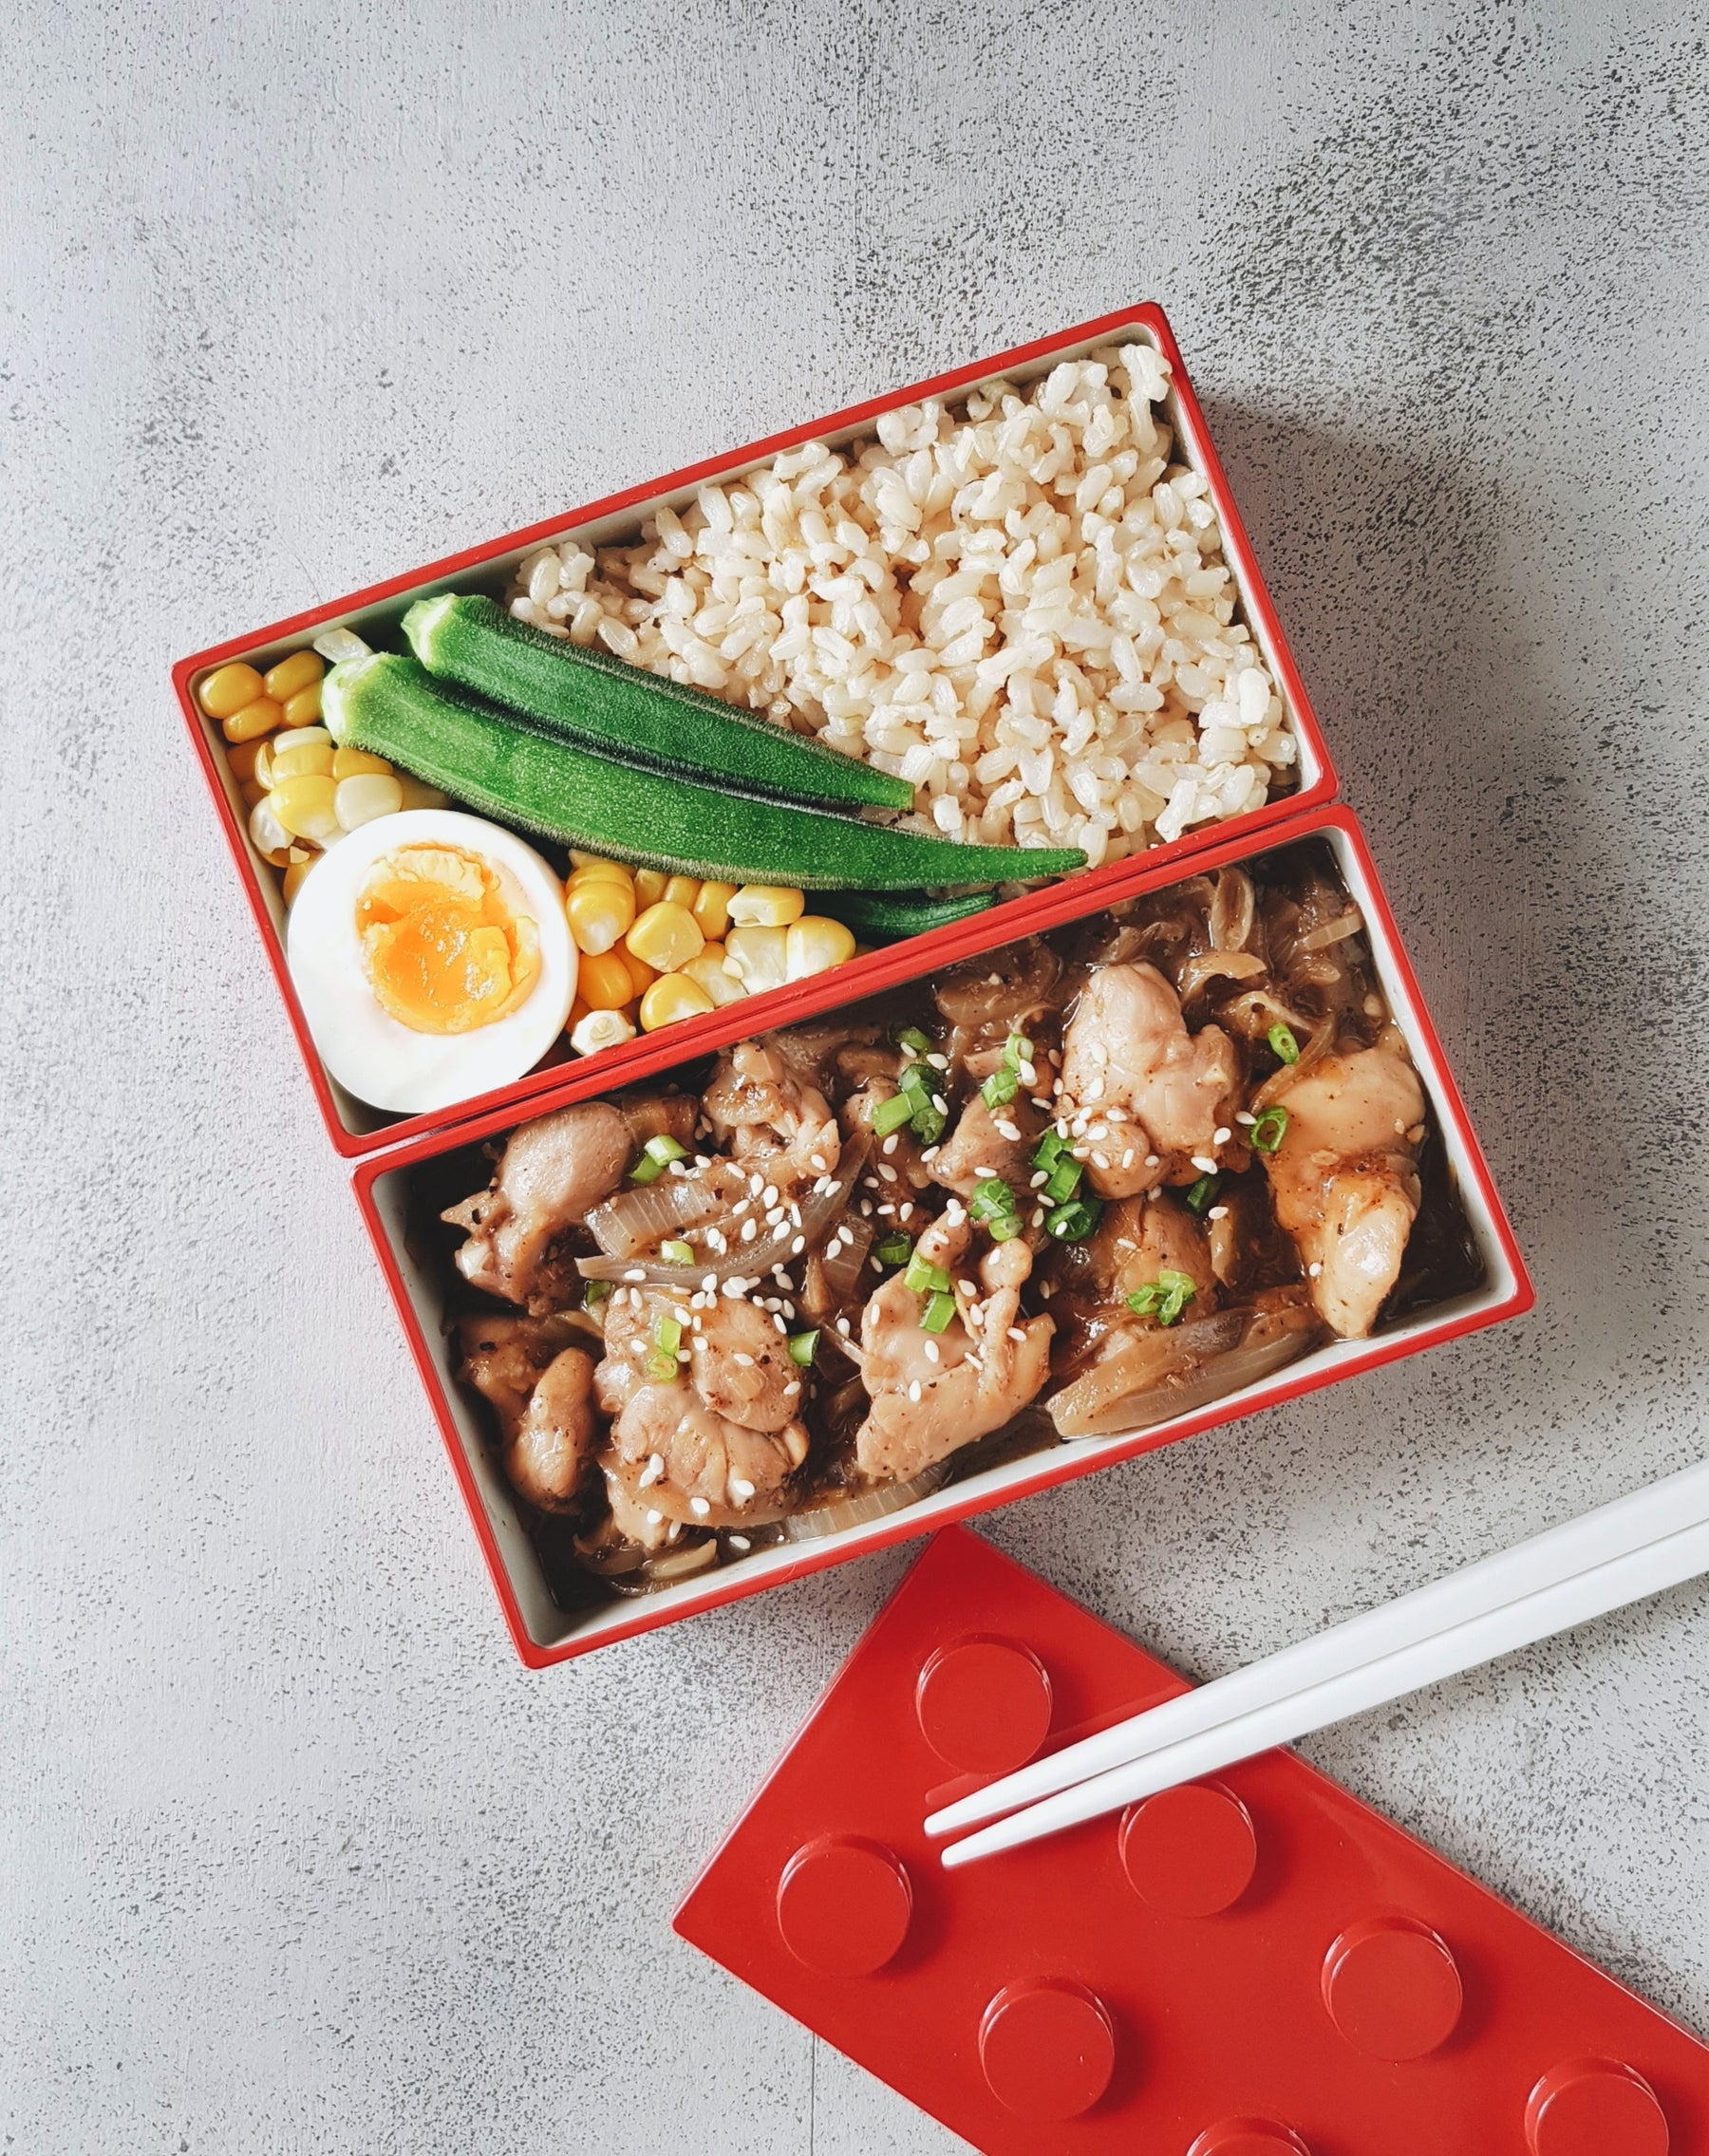 March 2019 Daily Bento Snaps~ Show us your daily bento!